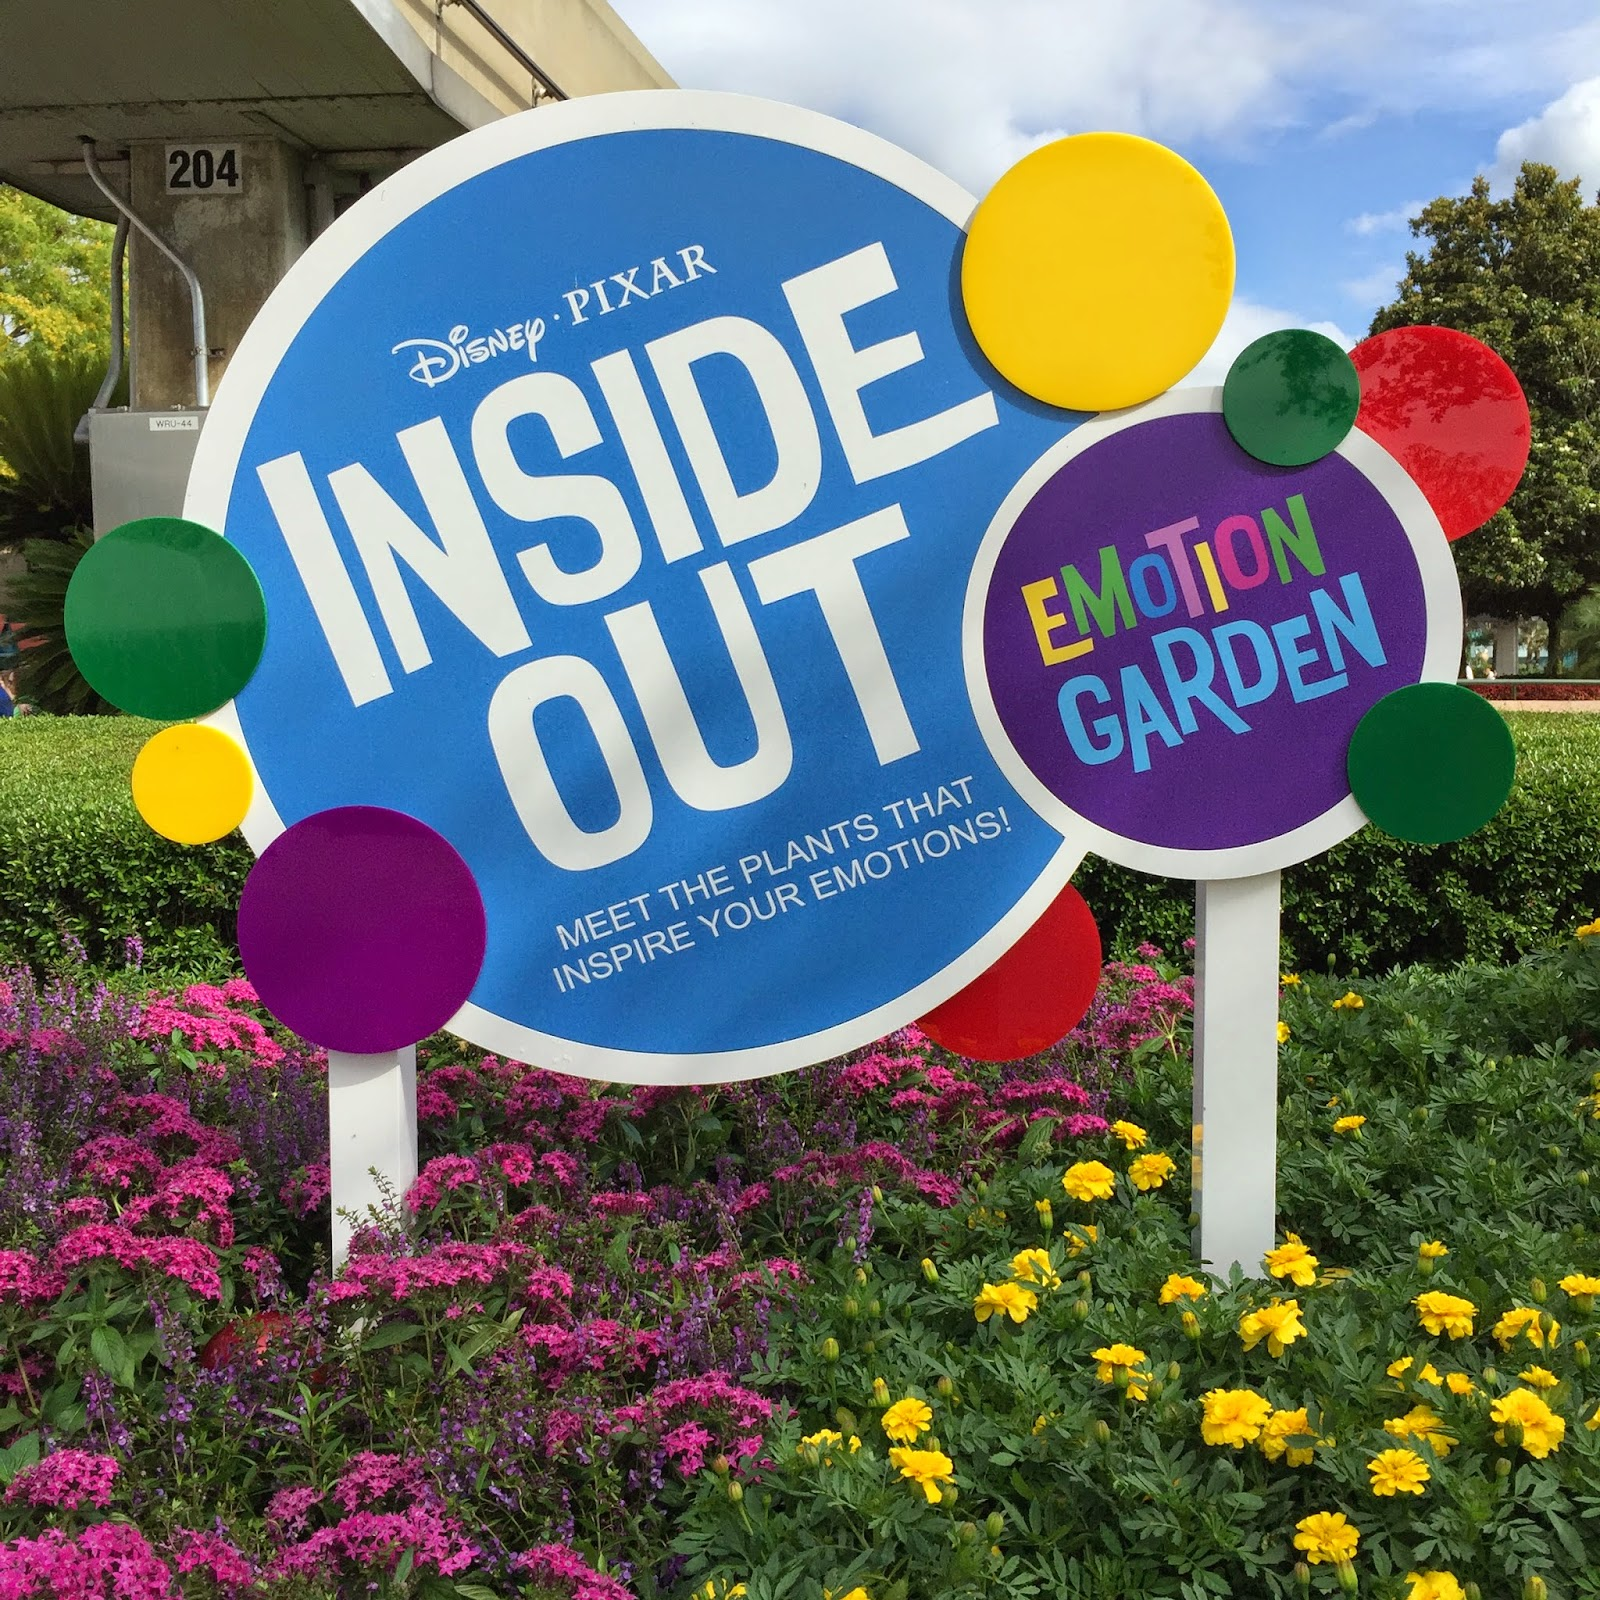 Plus the Magic: The Inside Out Emotion Garden